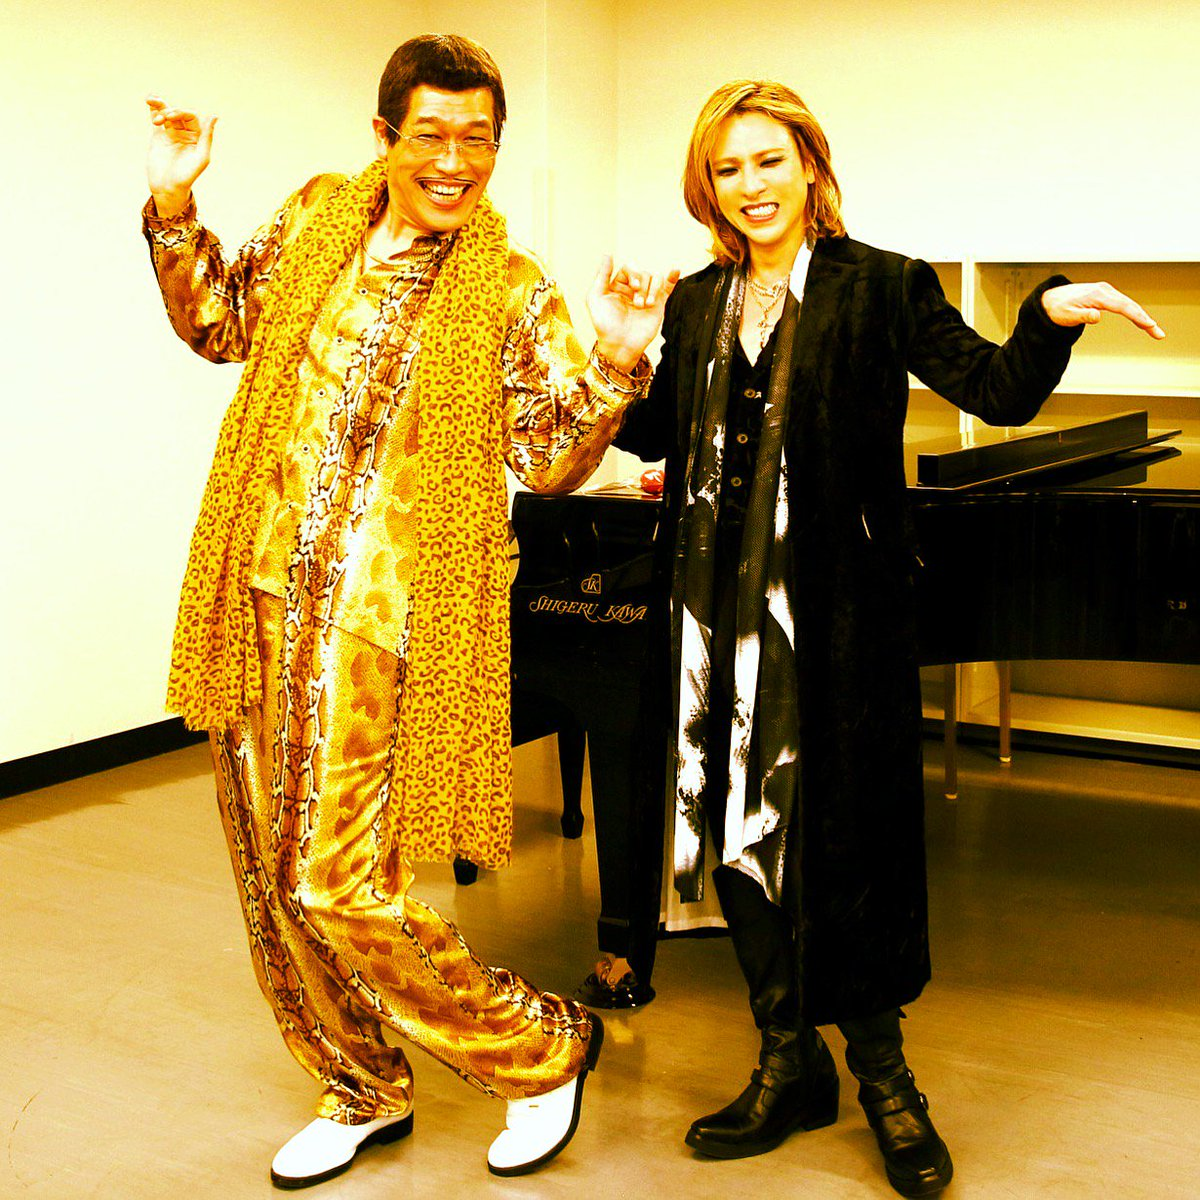 I have an #X. I have #Japan. Uh!..#XJAPAN! @pikotaro_ppap #ppap https://t.co/AfQcblnFDm https://t.co/iwTVVGXwOy